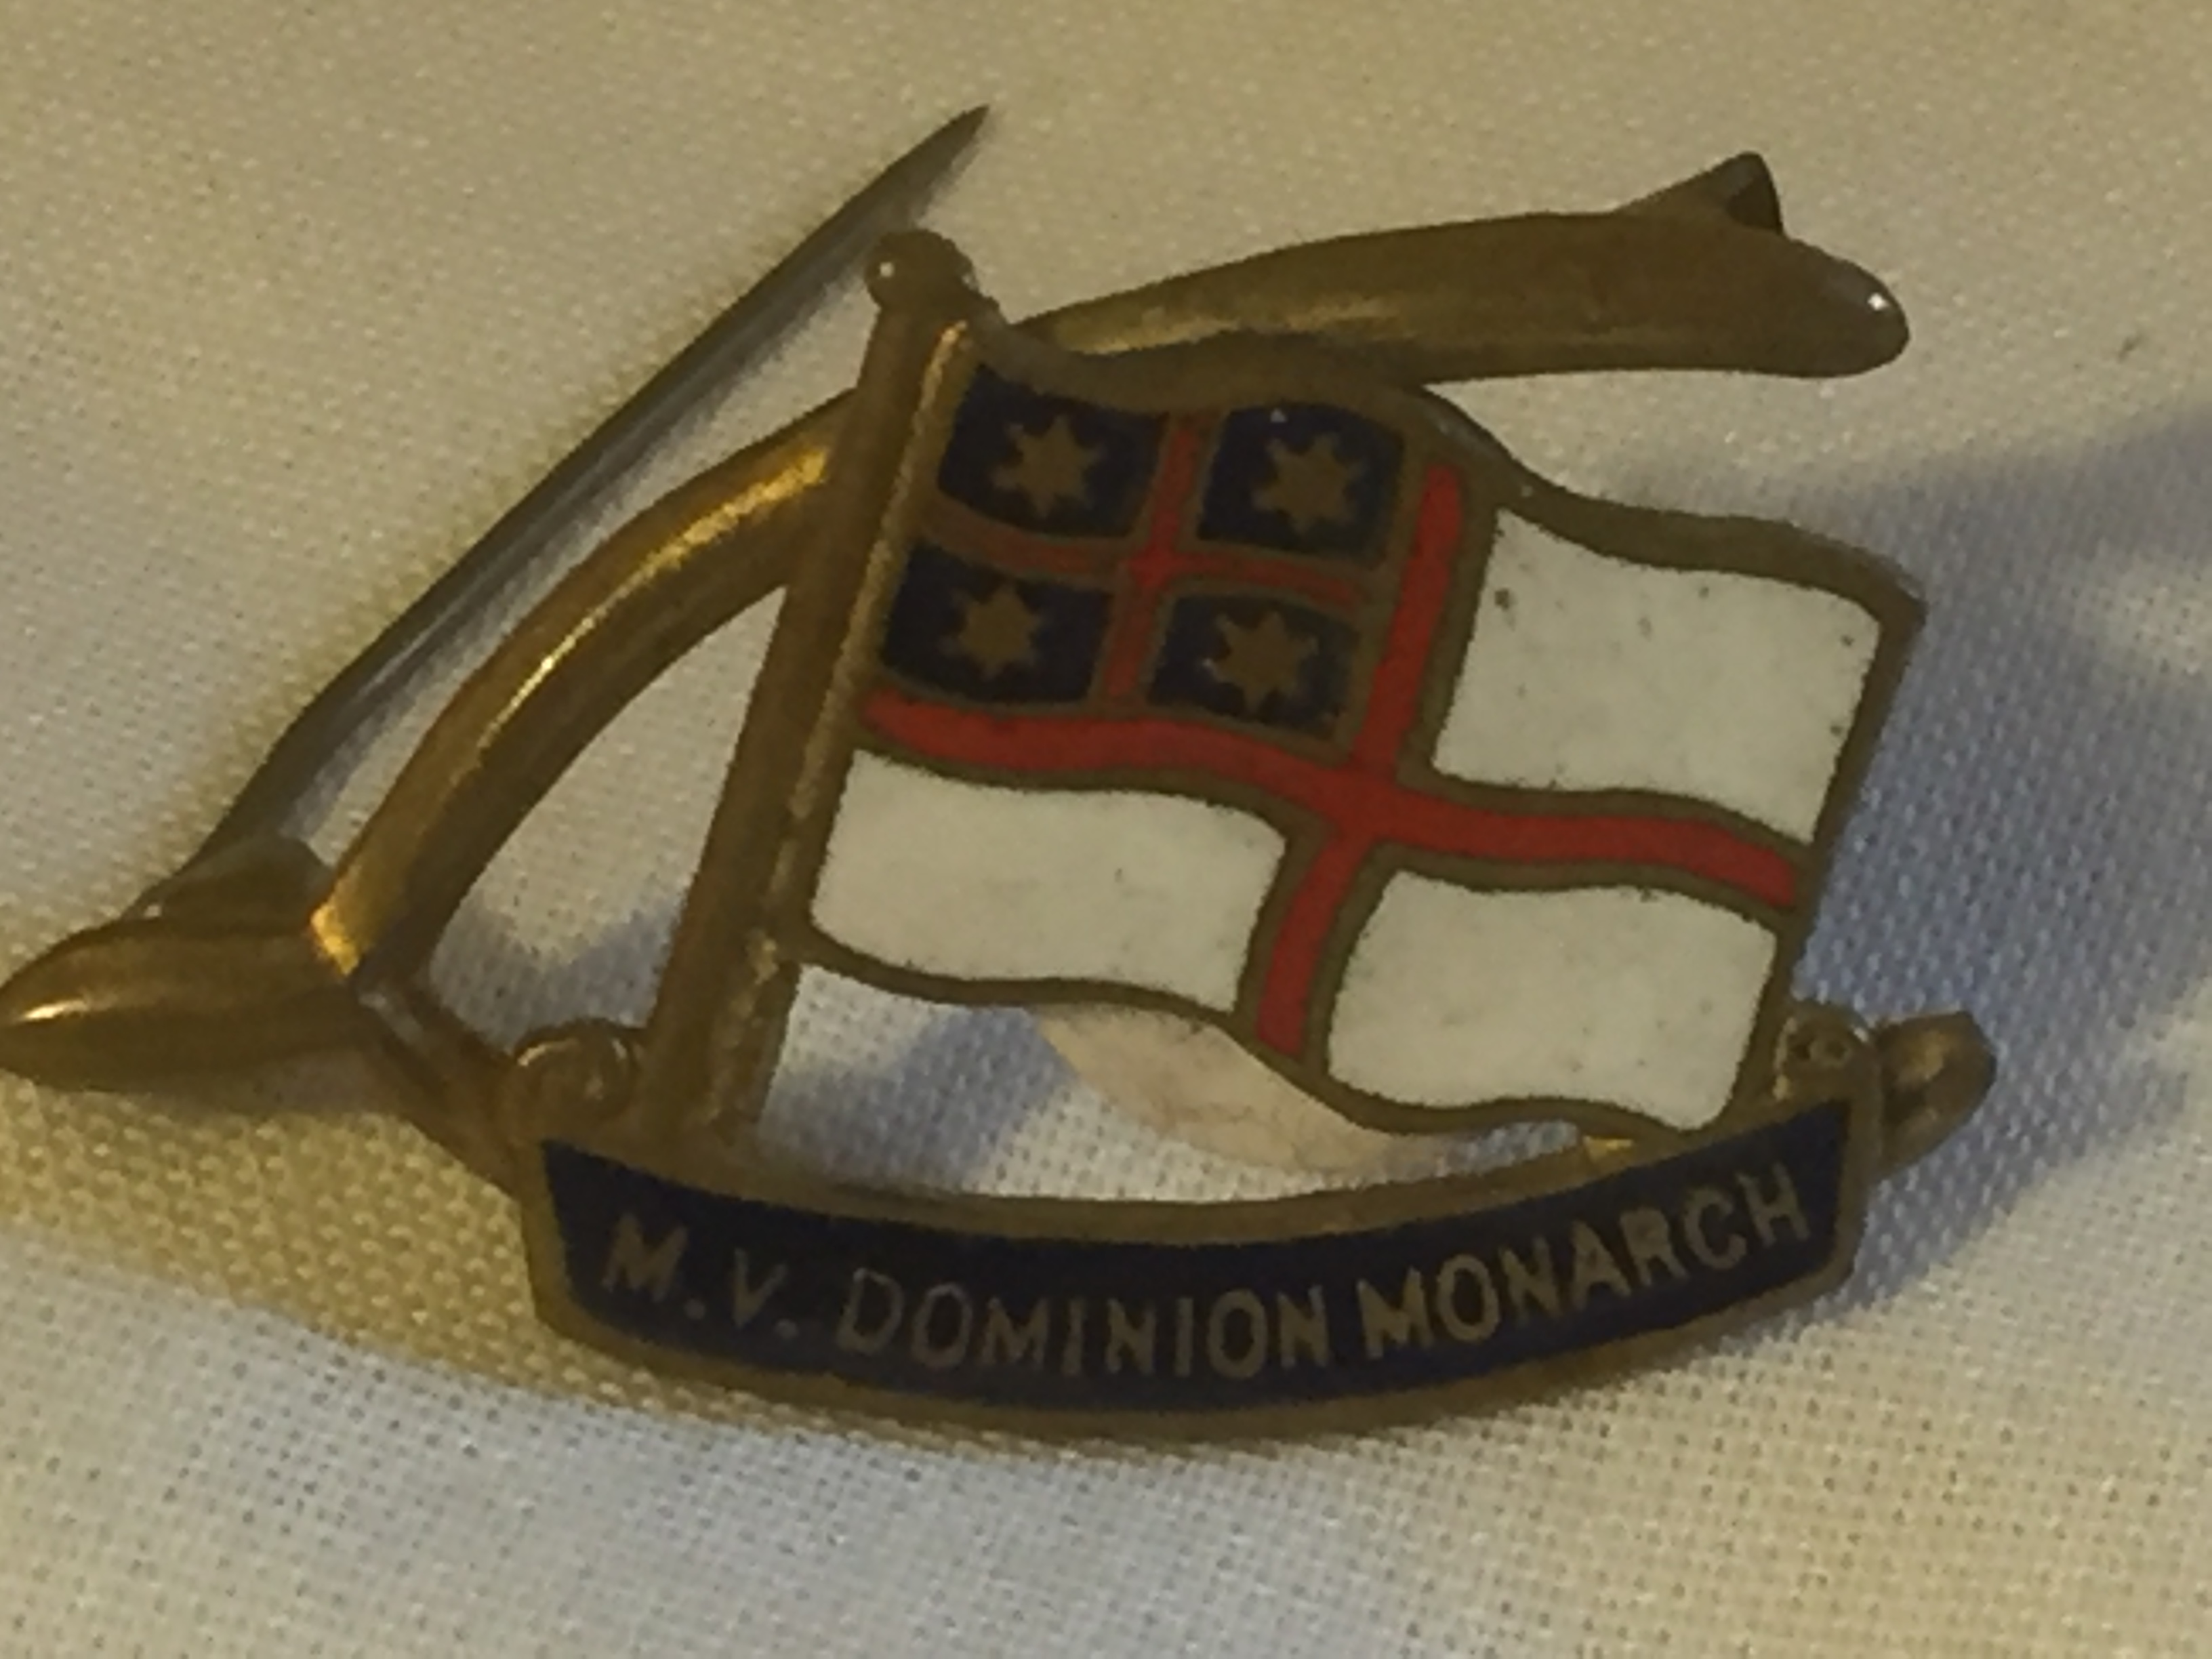 EARLY LAPEL PIN BADGE FROM THE DOMINION MONARCH A UK PASSENGER VESSEL